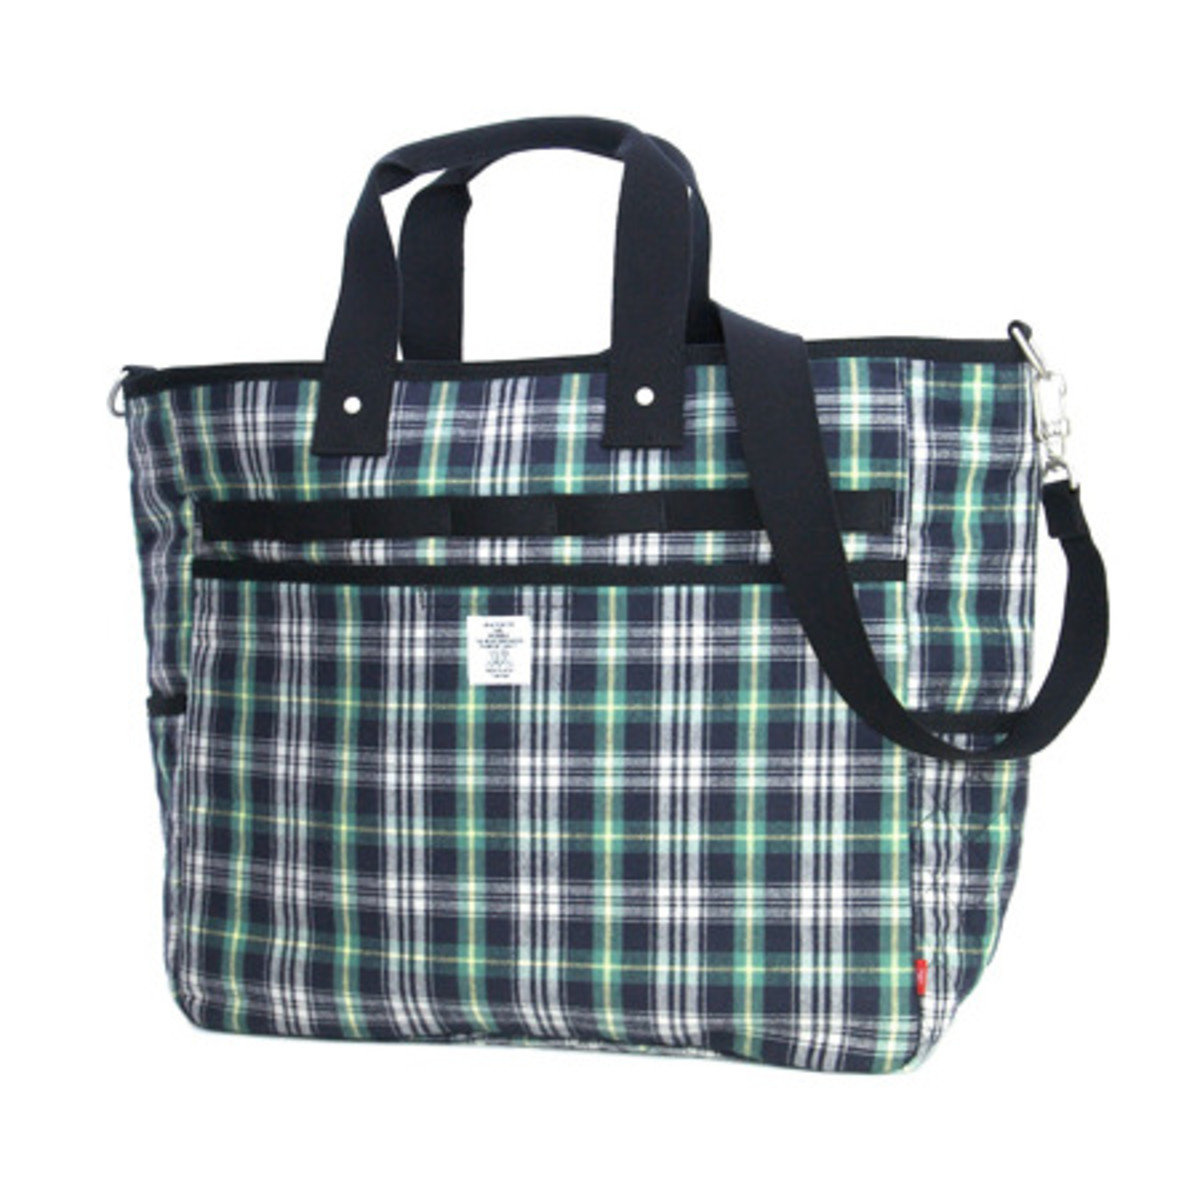 tote-bag-green